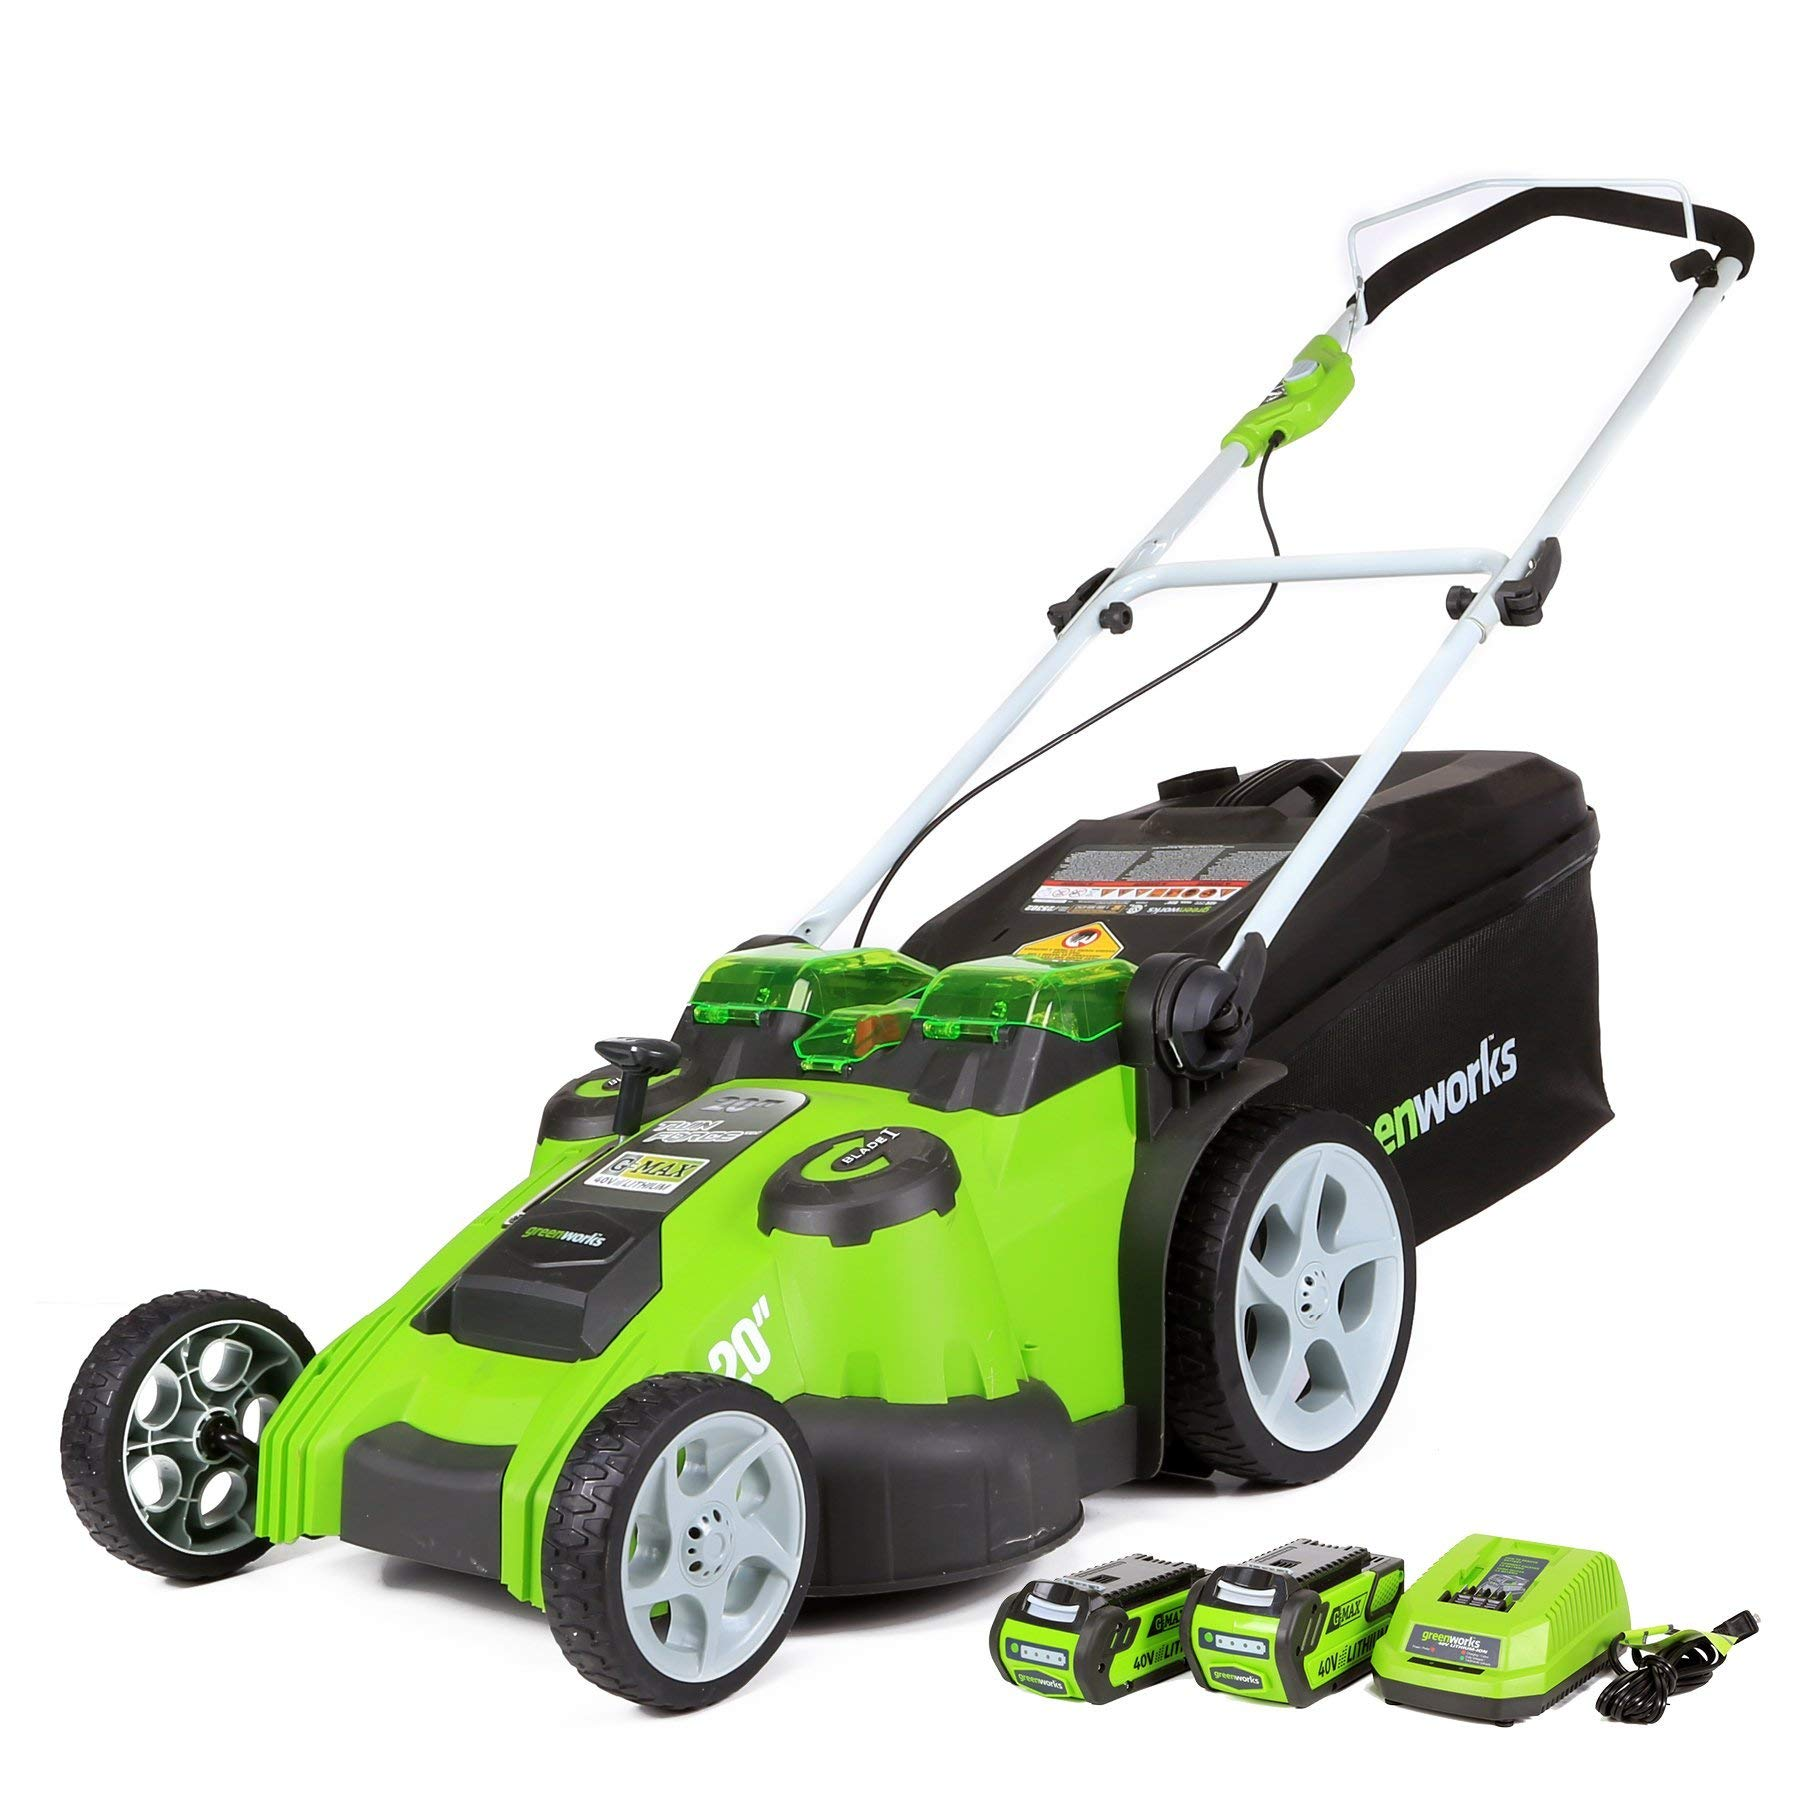 Greenworks 20-Inch 40V Twin Force Cordless Lawn Mower, 4.0 AH & 2.0 AH Batteries Included 25302 (Renewed) by Greenworks